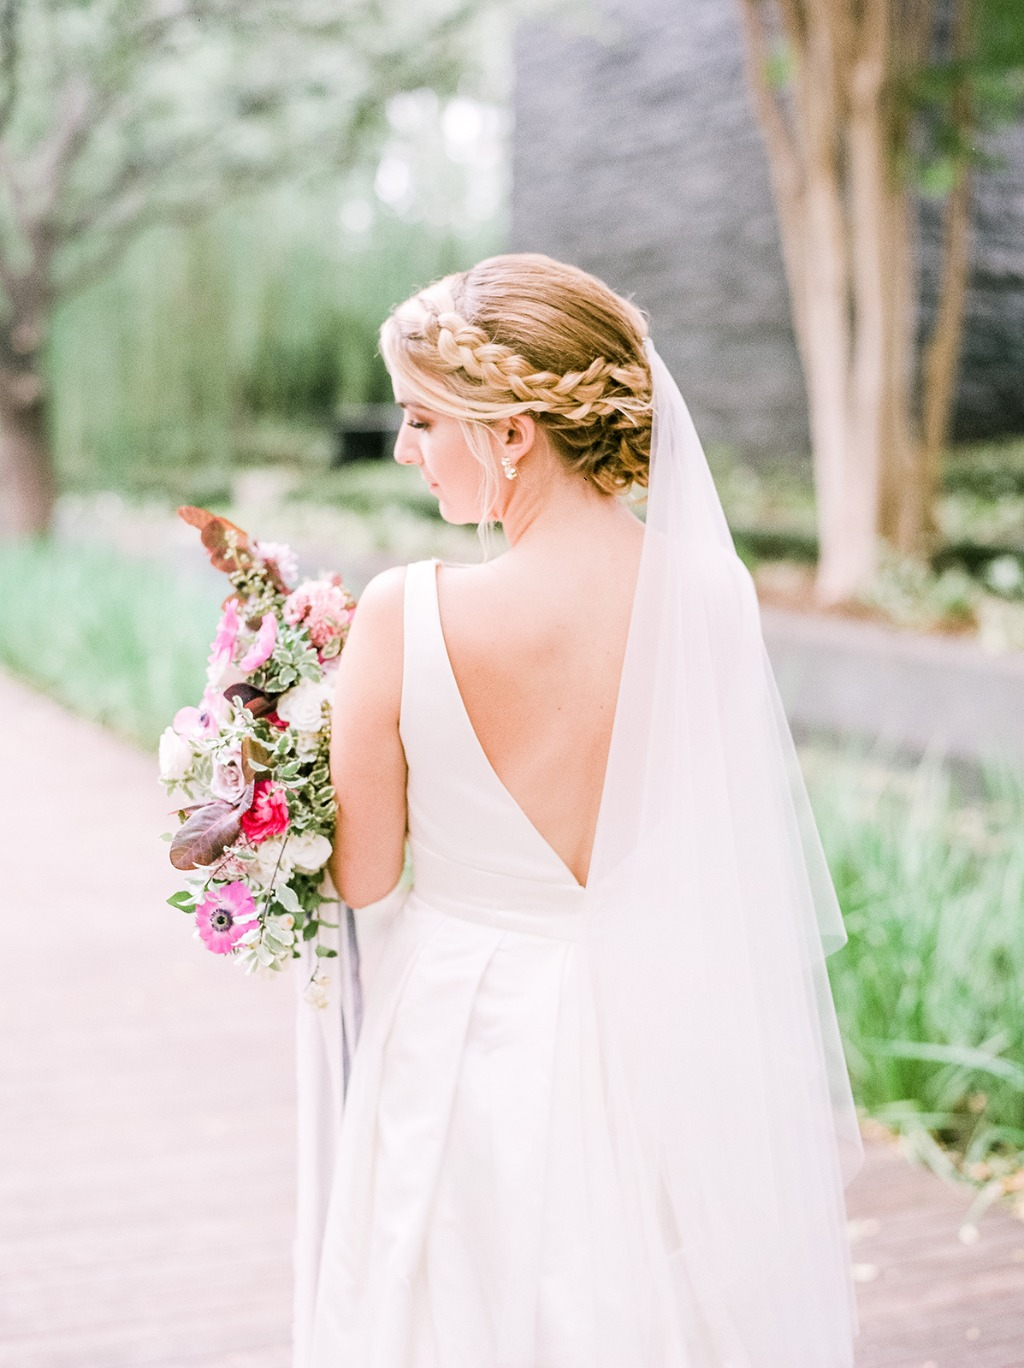 SCULPTURE GARDEN WEDDING EDITORIAL. Lea-Ann Belter Peony gown | Bridal shop: Bridal Boutique of Lewisville | photography and styling